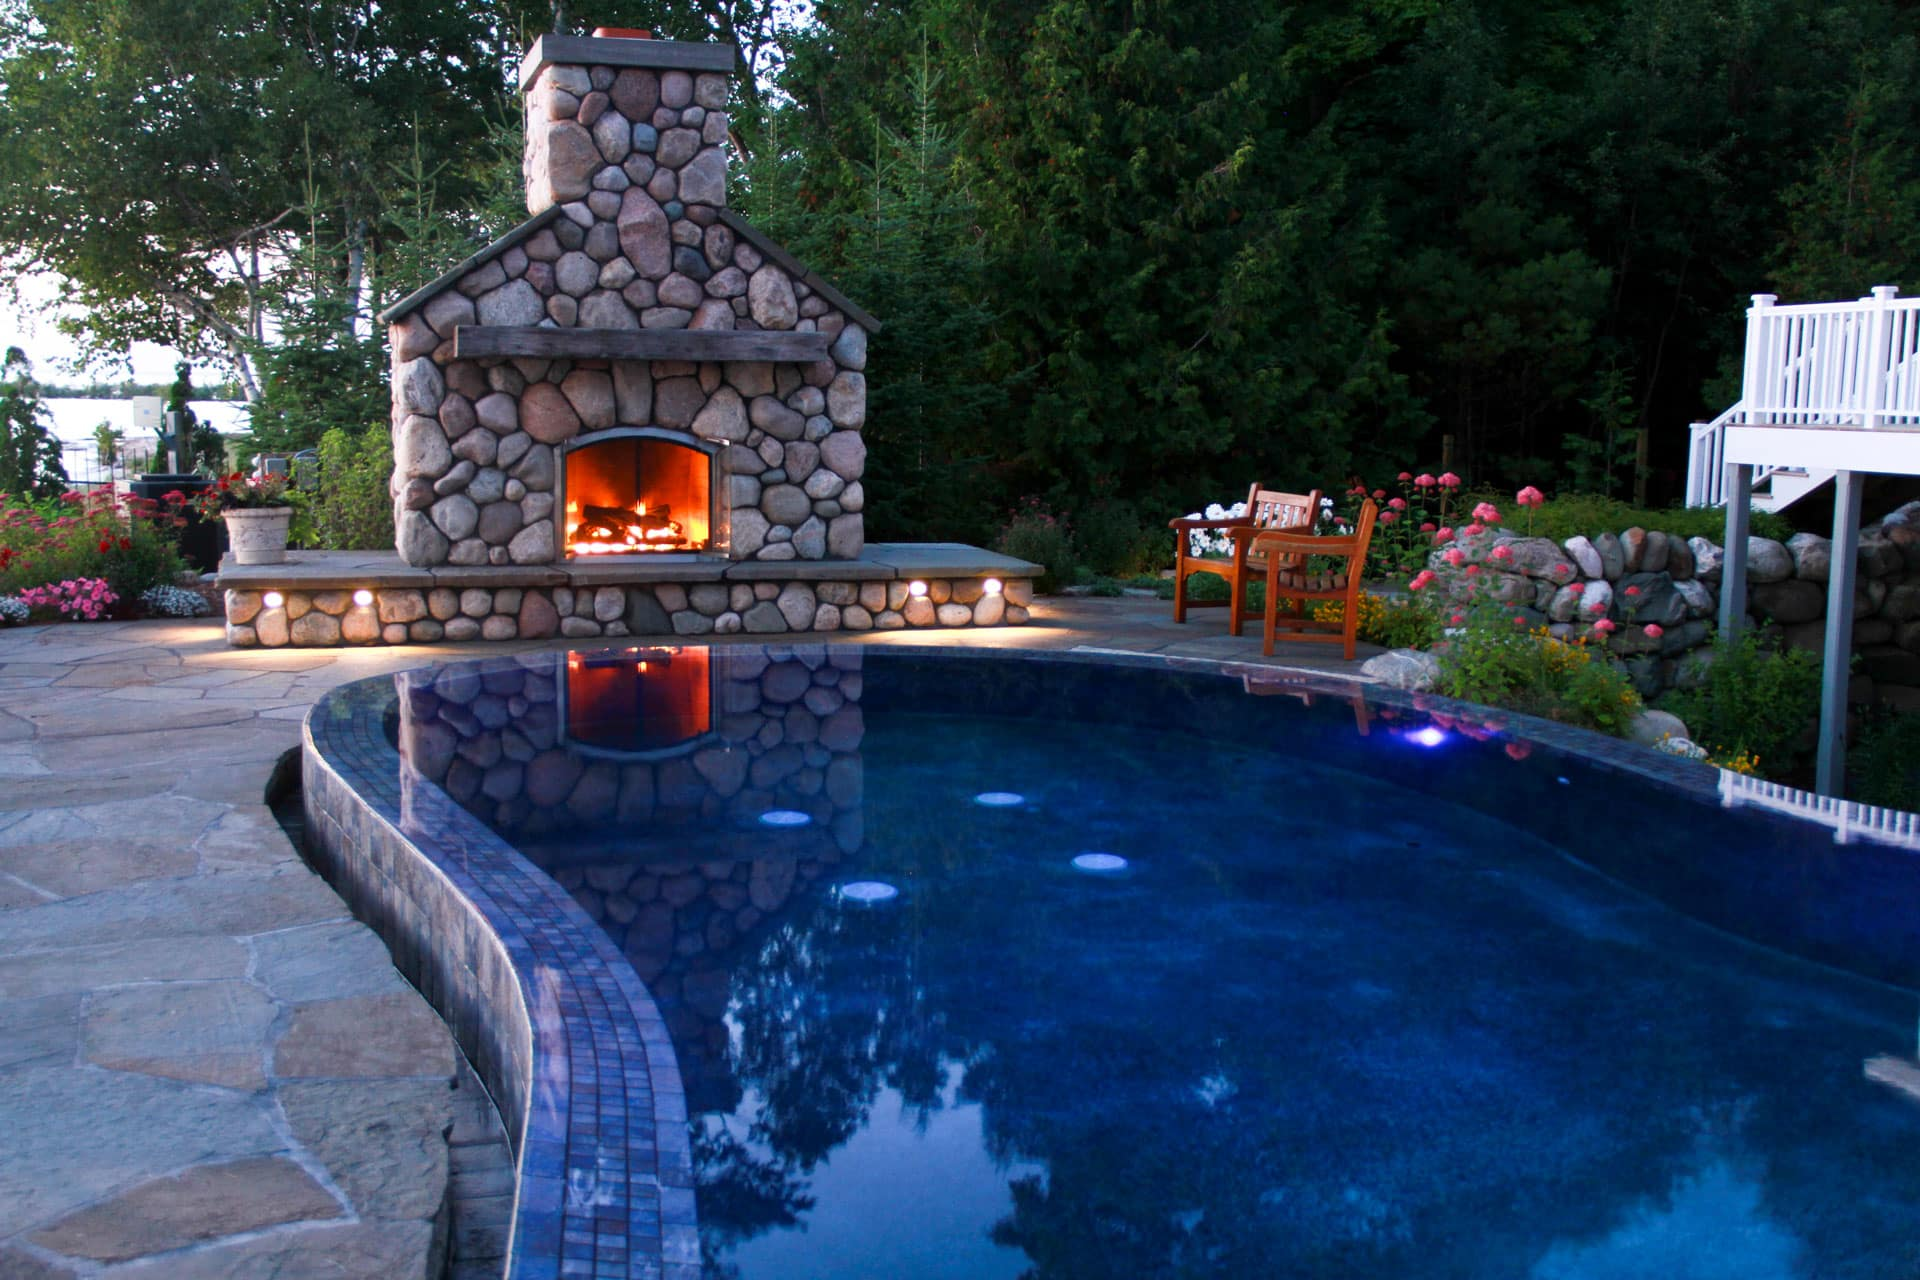 Landscaped Outdoor Living: Fire Pit Ideas Simplified ... on Outdoor Fire Pit Ideas id=83474